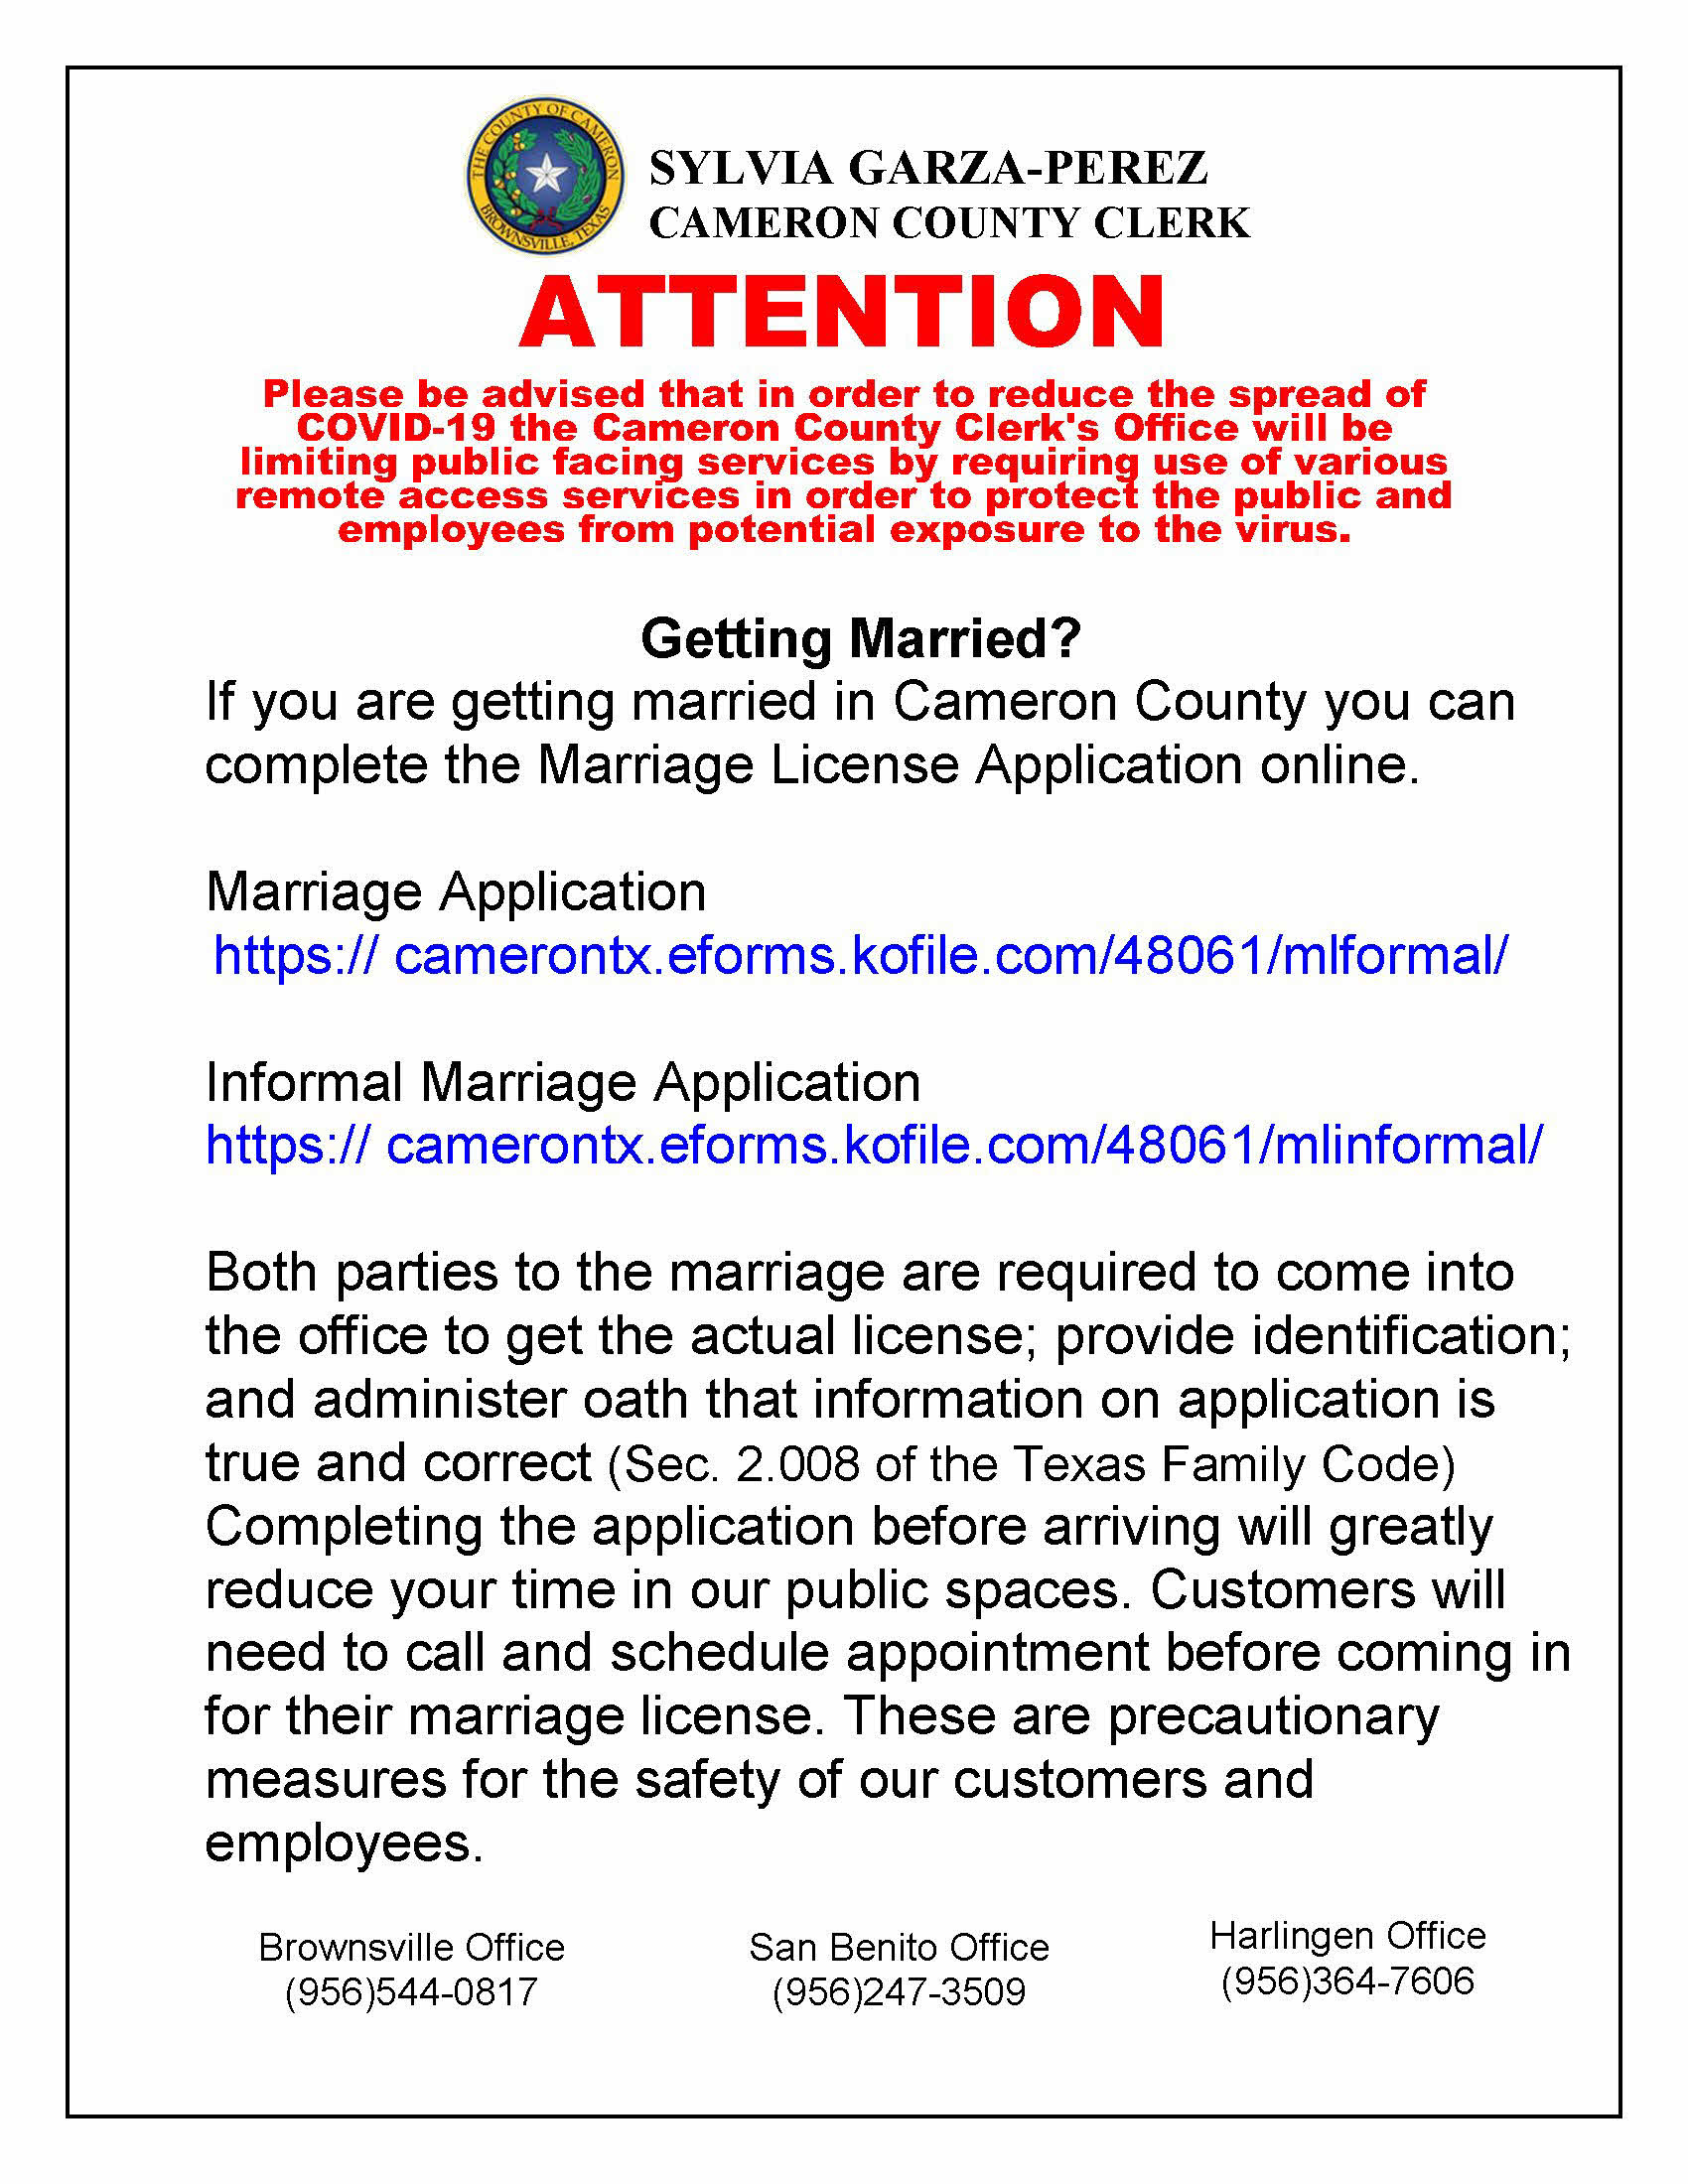 Getting Married Appointment Necessary COVID19